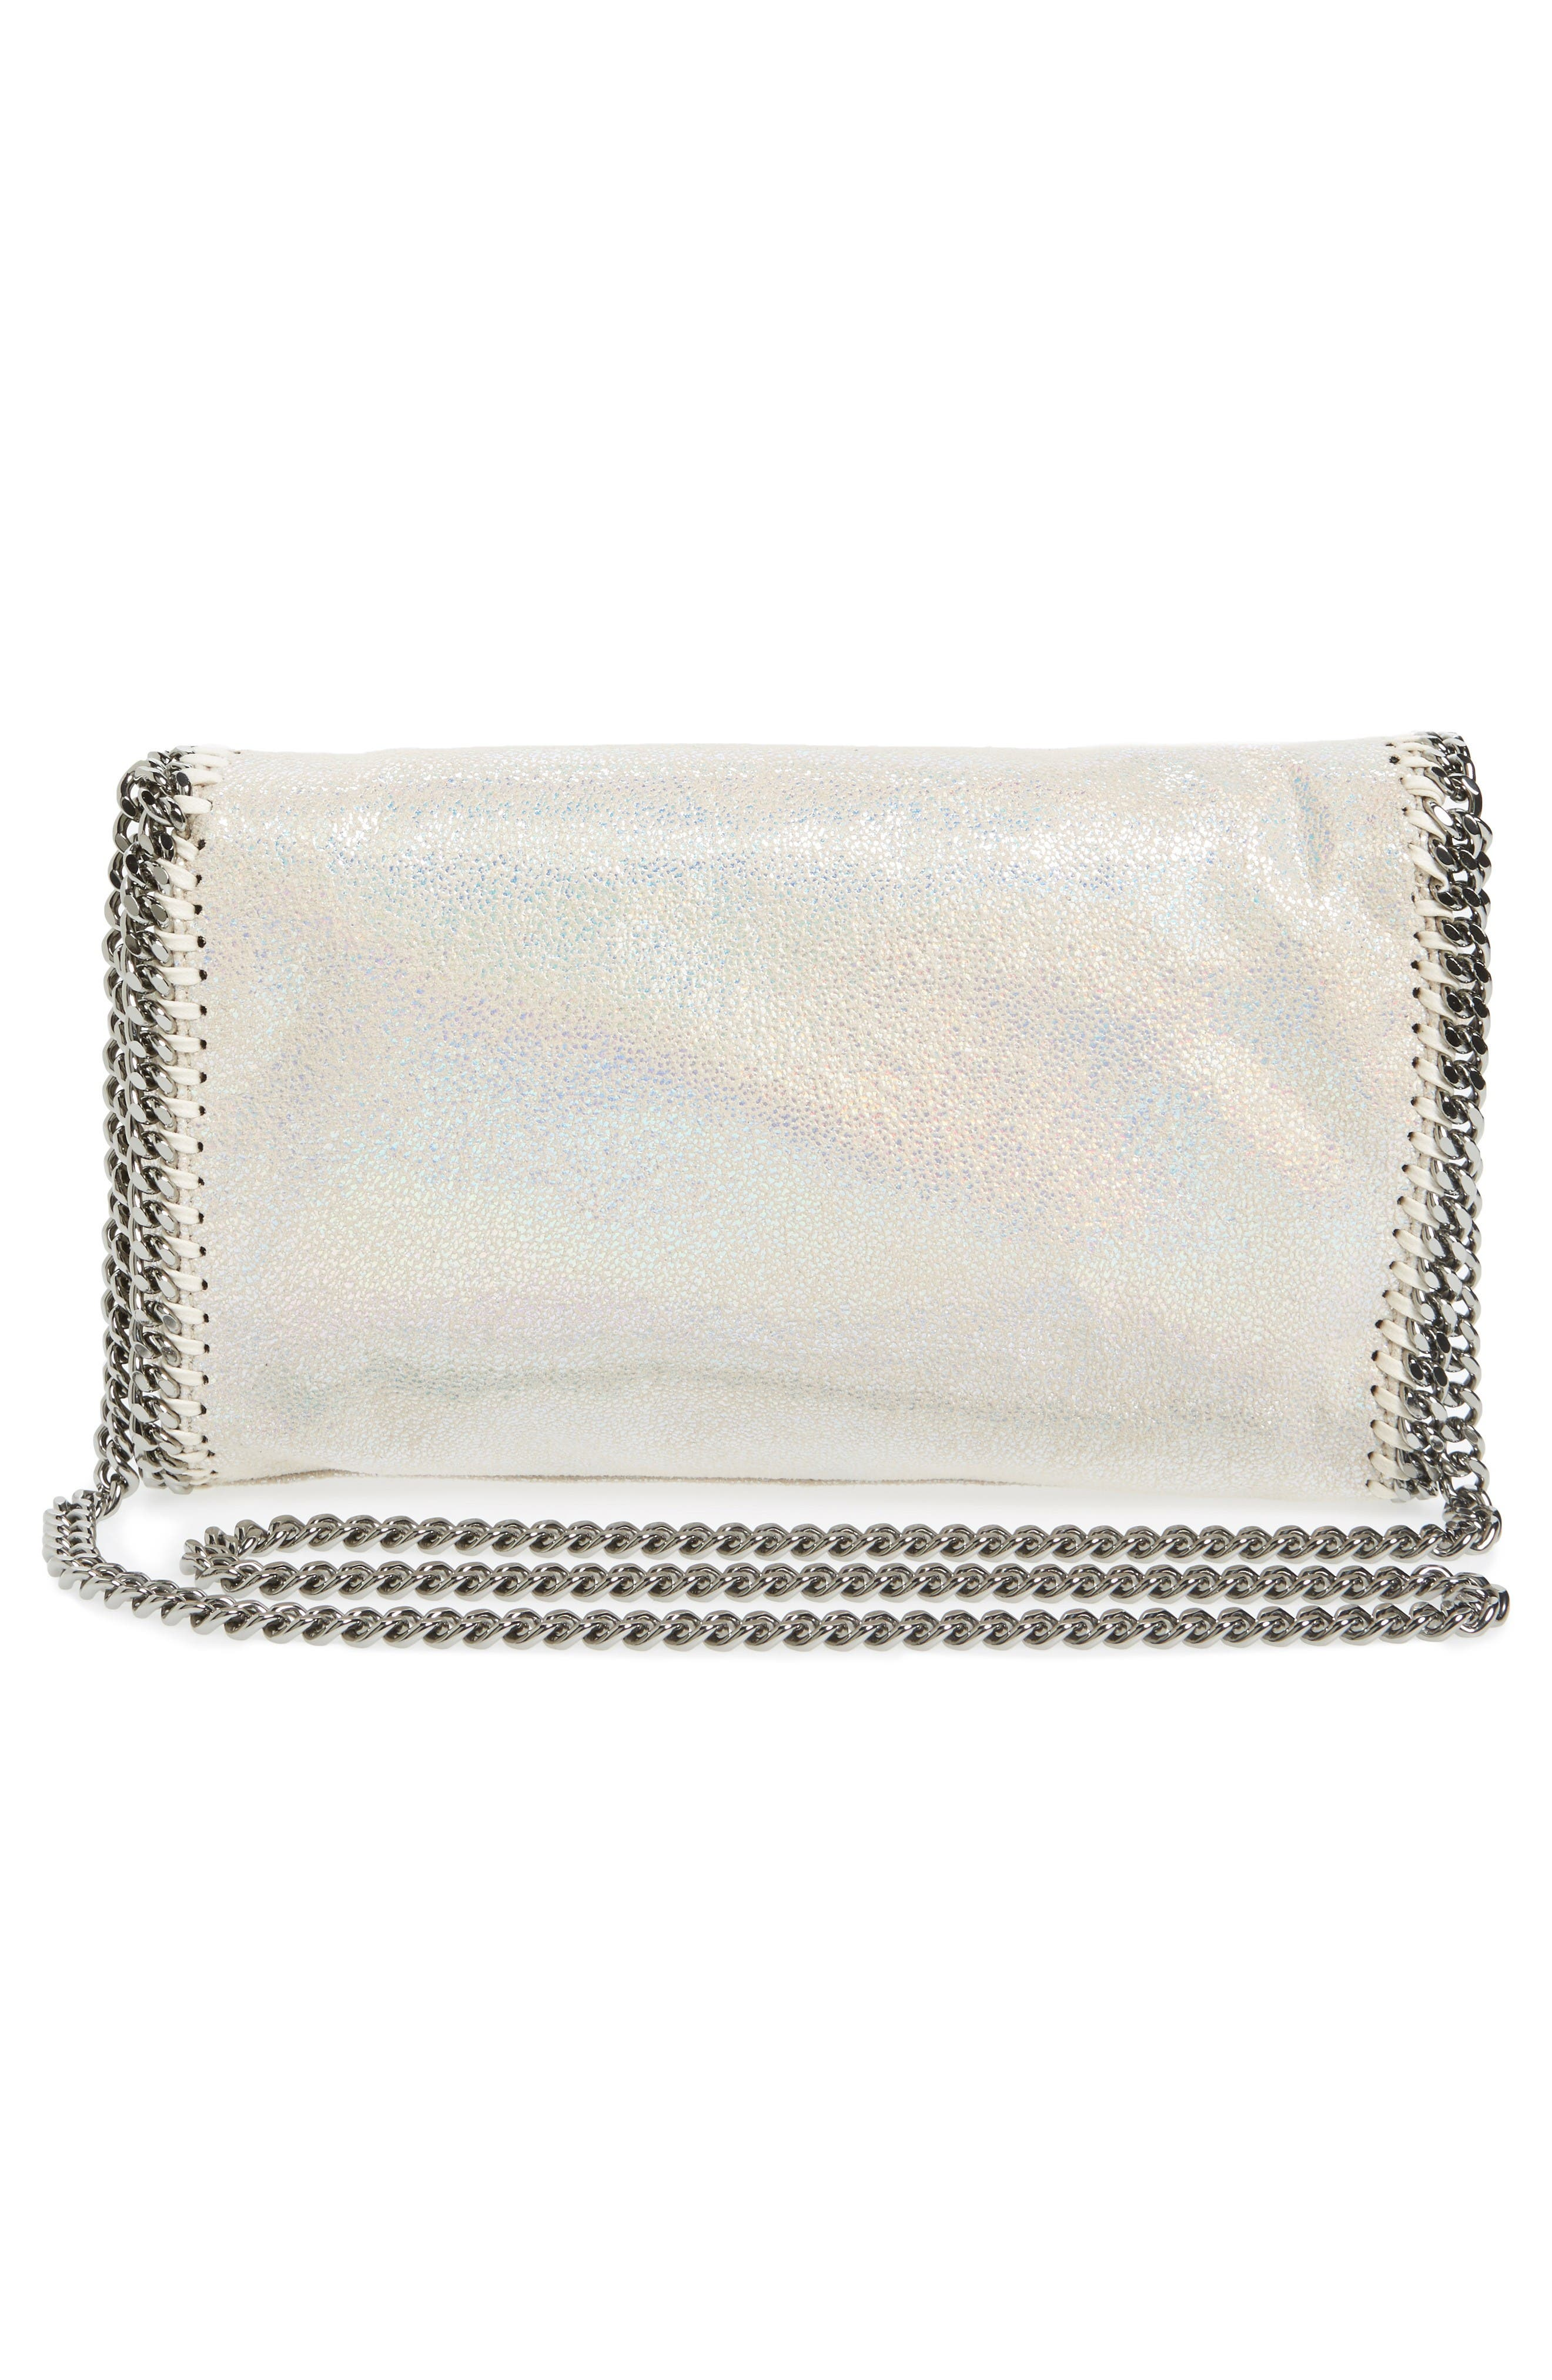 Alternate Image 2  - Stella McCartney Falabella Shaggy Deer Faux Leather Crossbody Bag